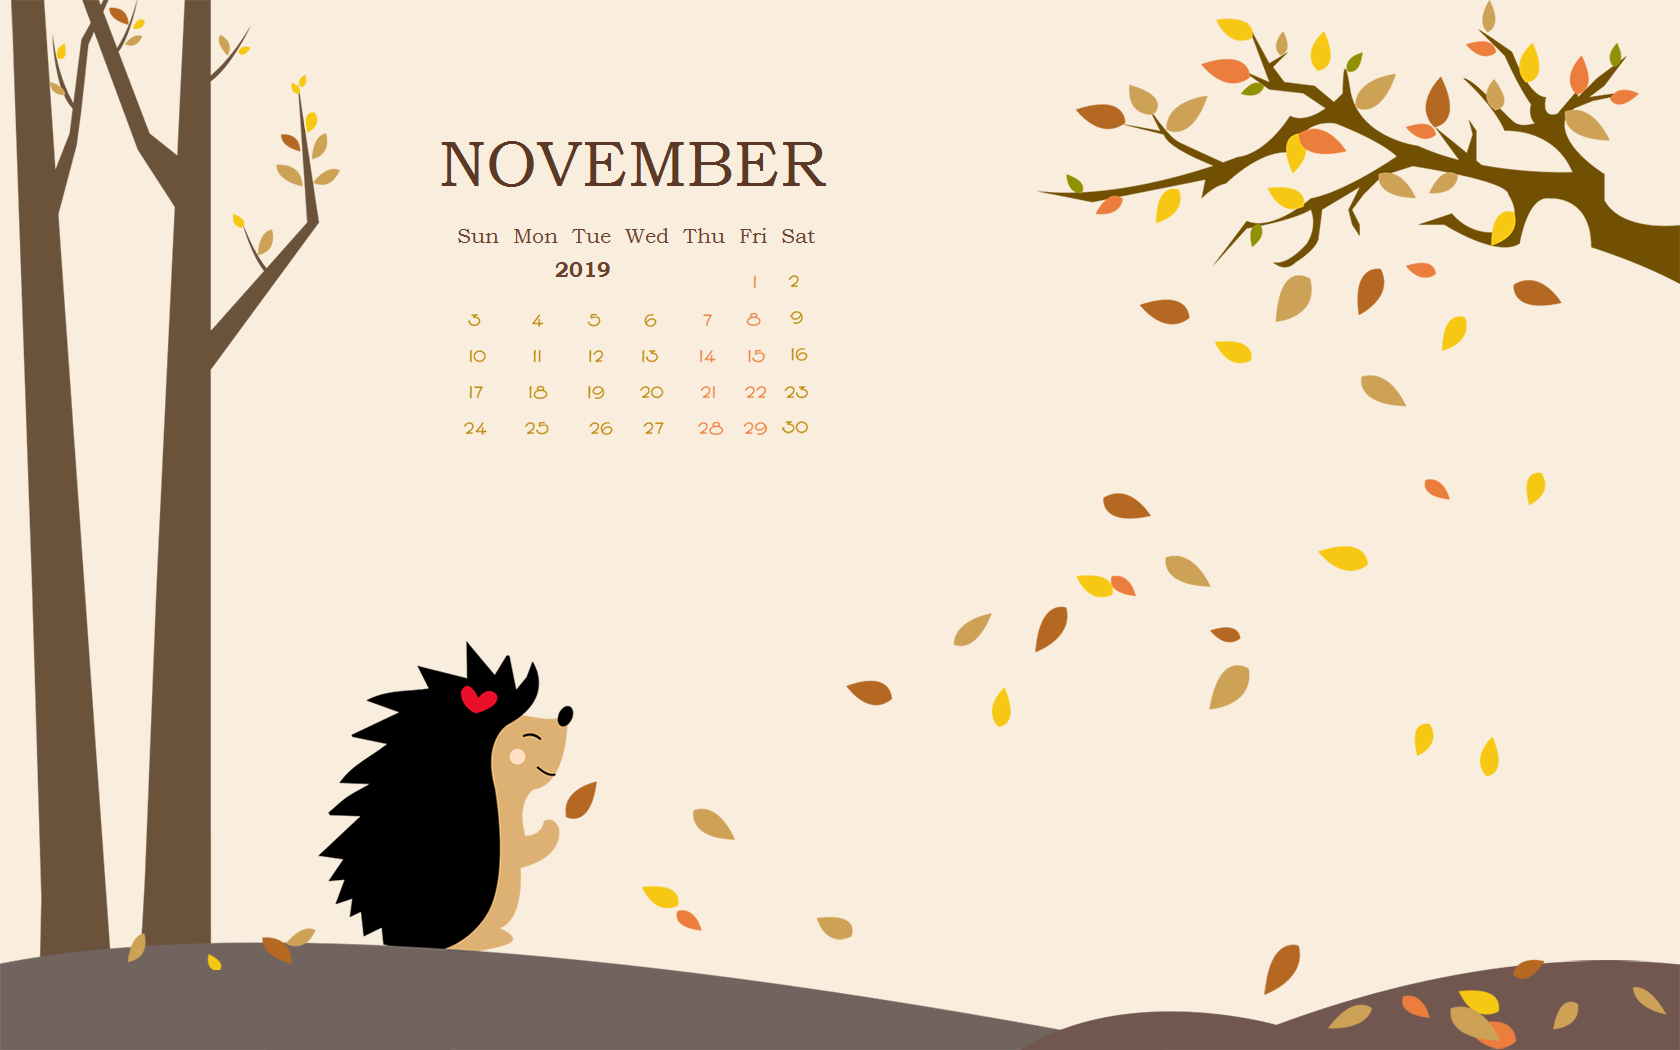 November 2019 Screensaver Calendar Wallpaper